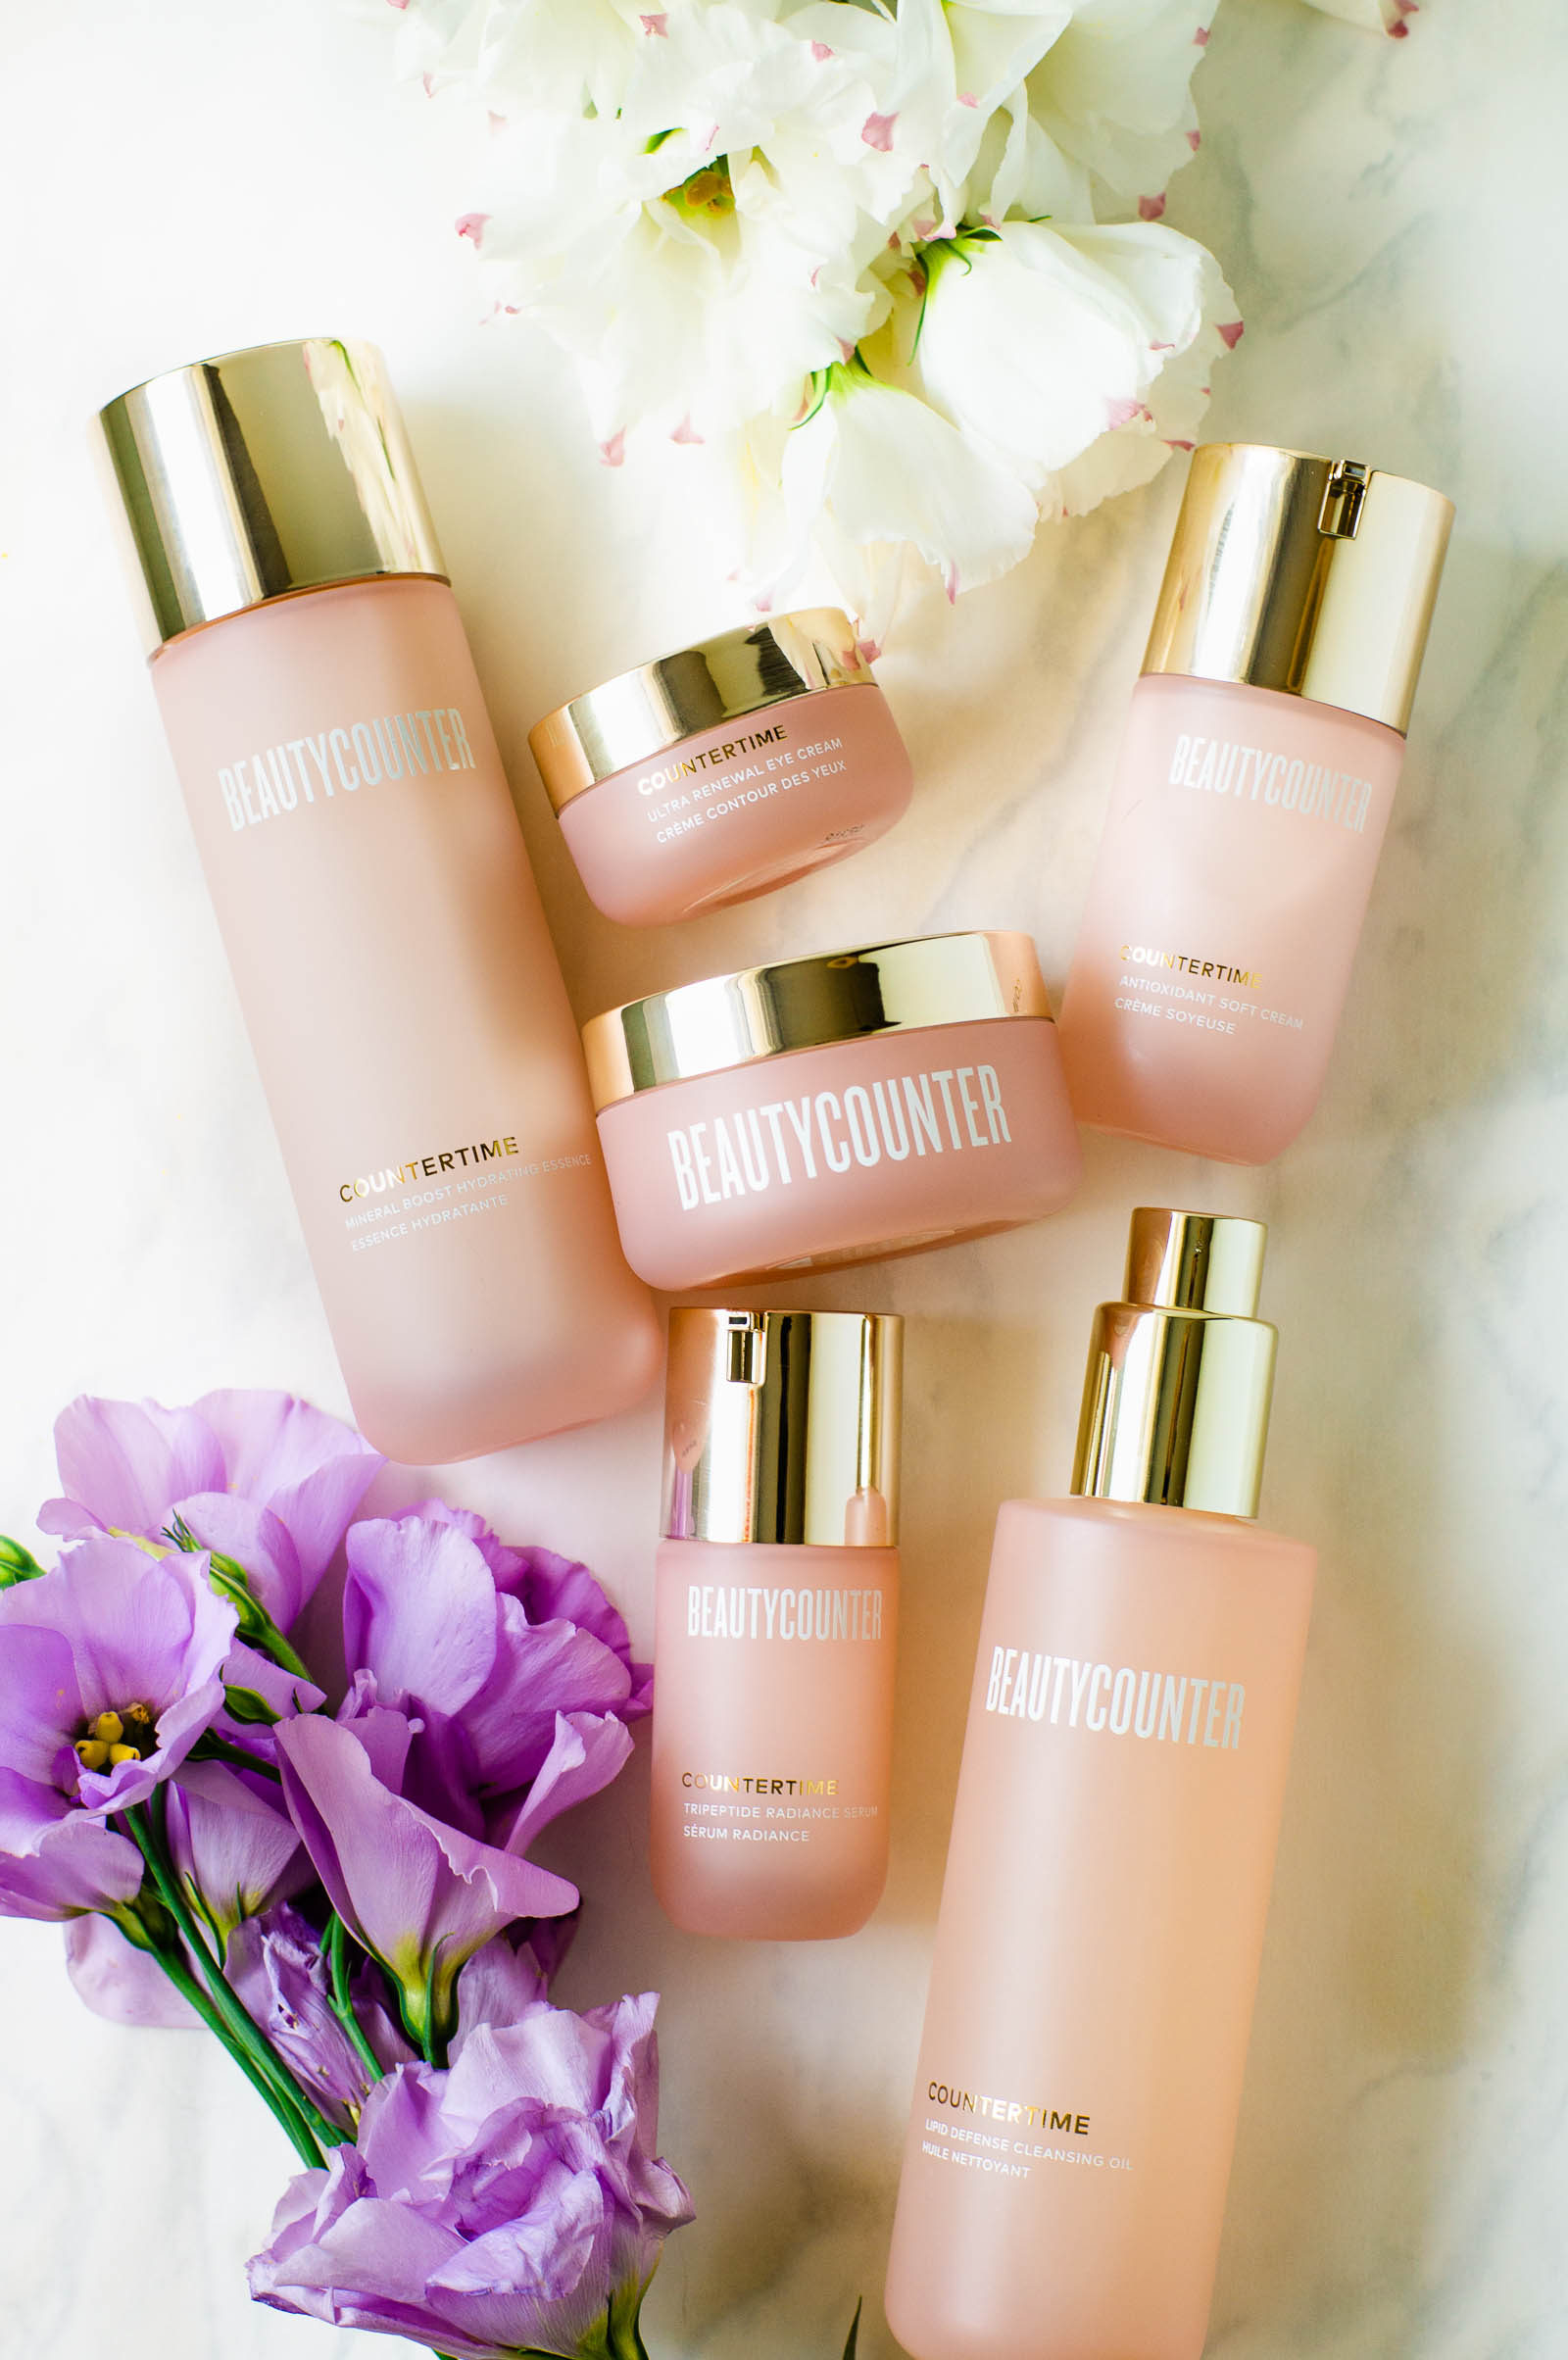 Countertime features bakuchiol, a vegan alternative to retinol that is scientifically proven just as effective for anti-aging